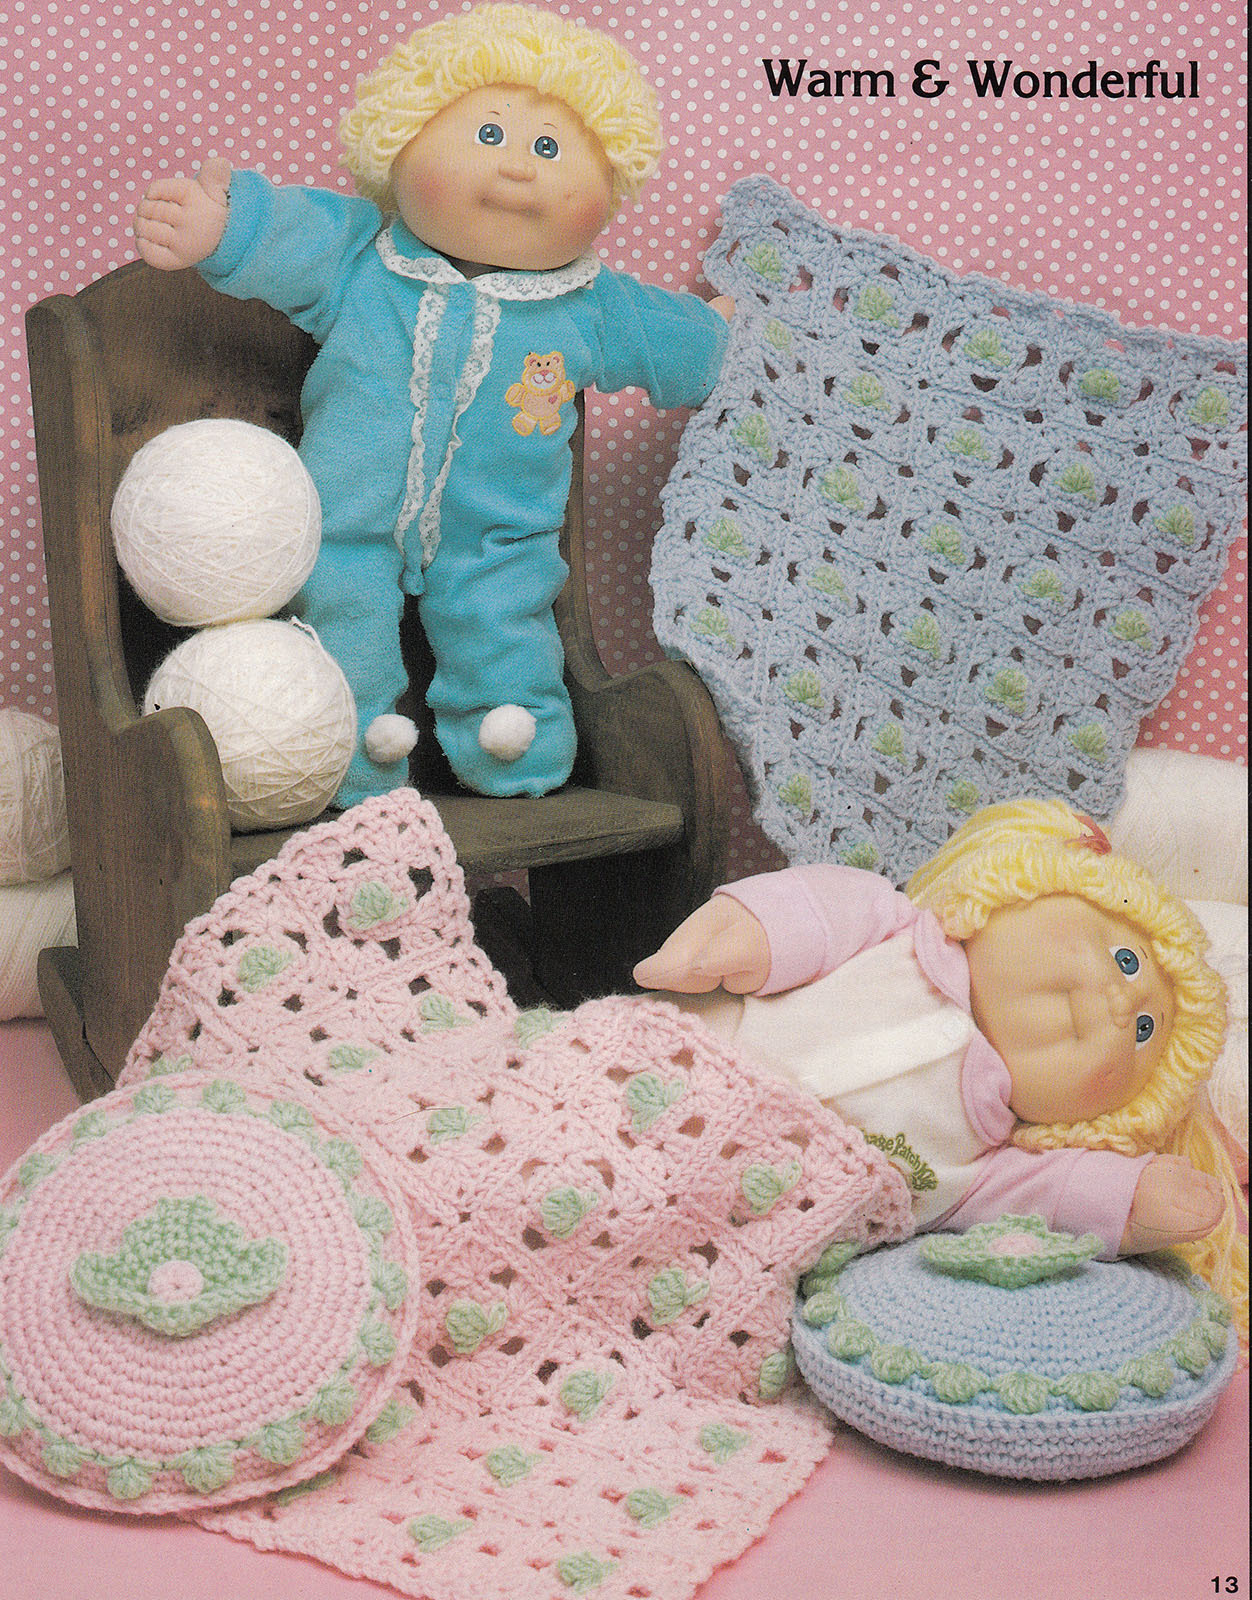 Crochet Cabbage Patch Doll Funwear Cowpoke and 15 similar items